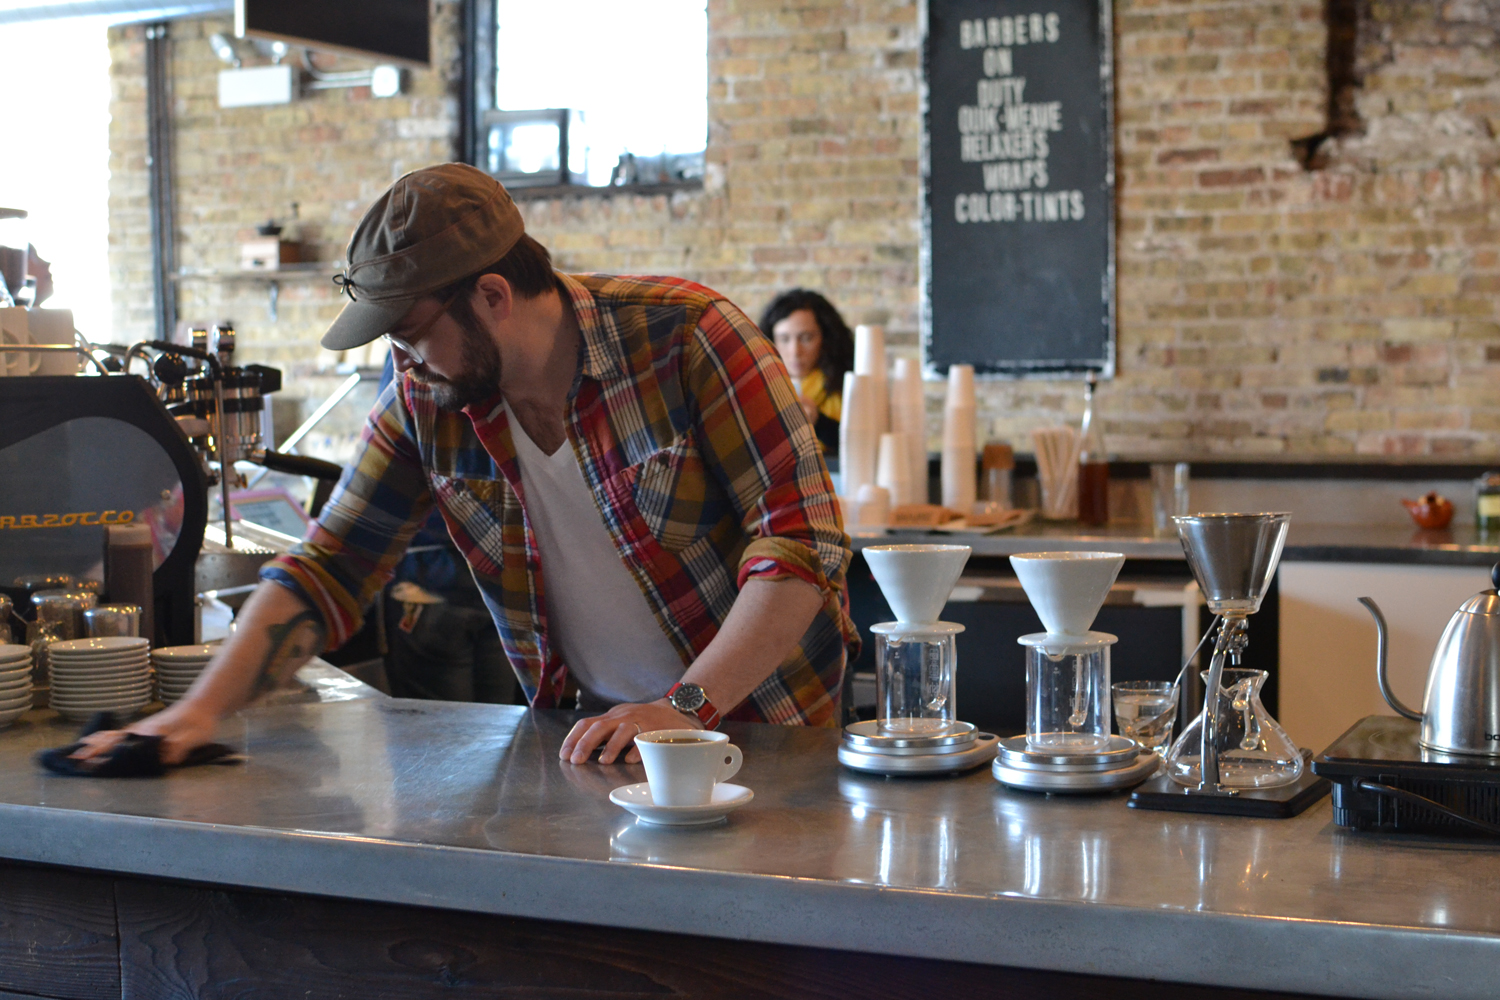 Gaslight Coffee owner Tristan Coulter